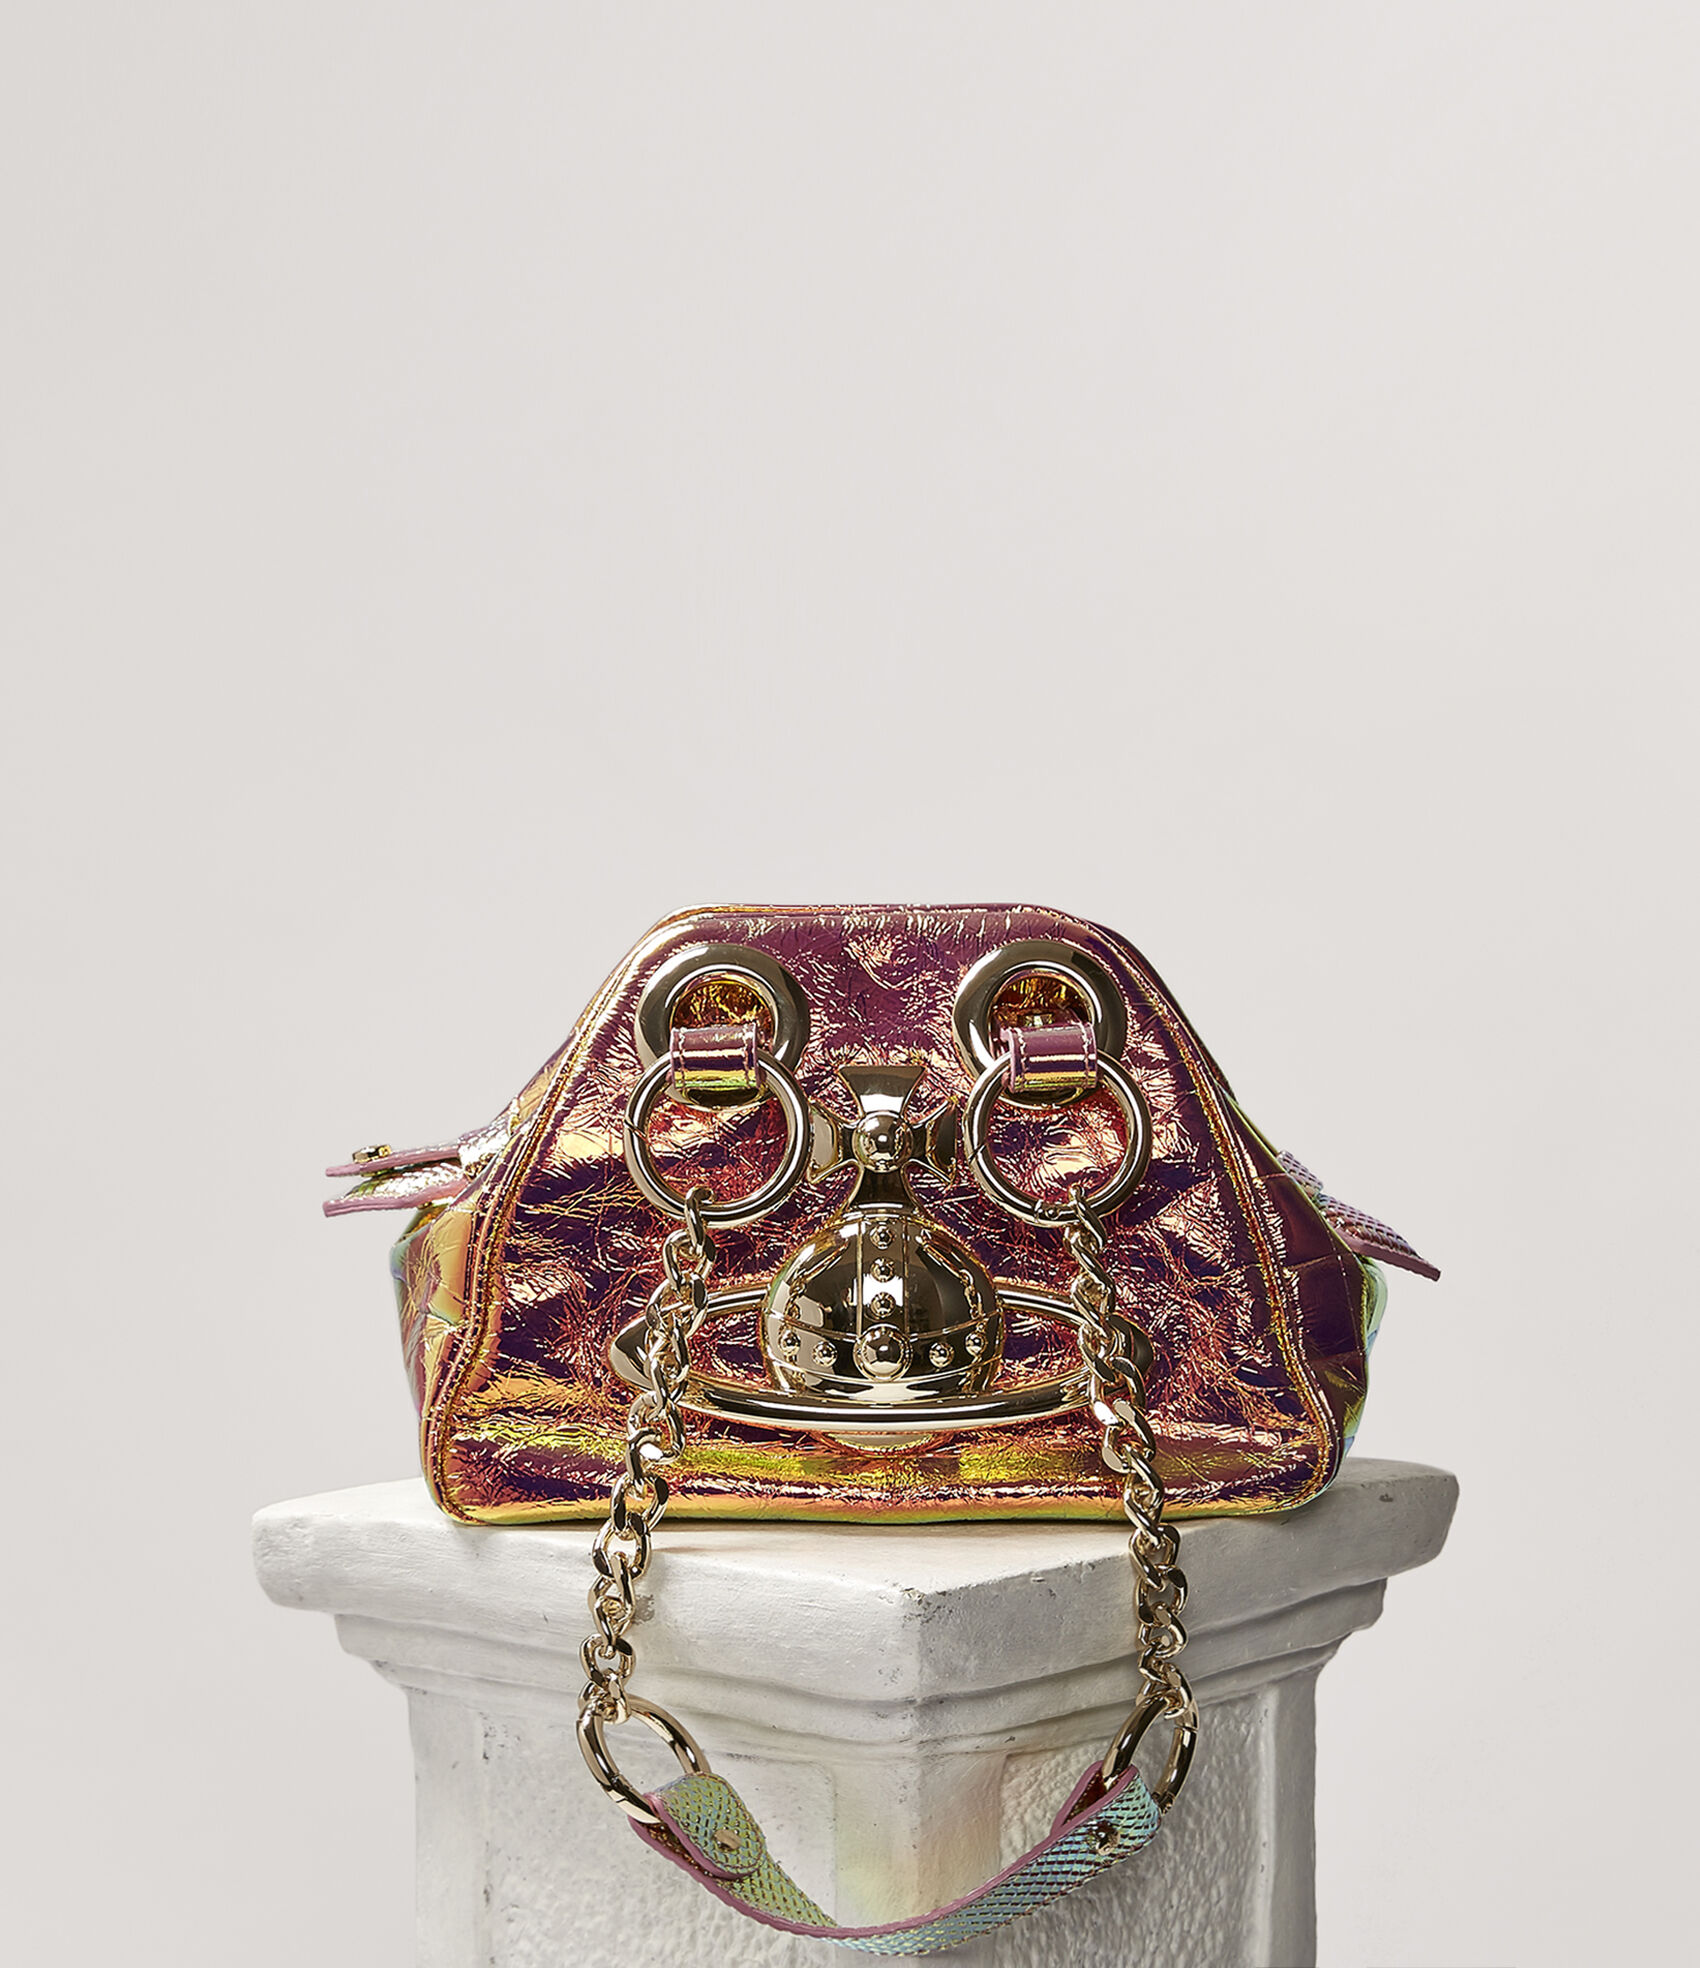 Archive Orb Yasmine Gold  by Vivienne Westwood